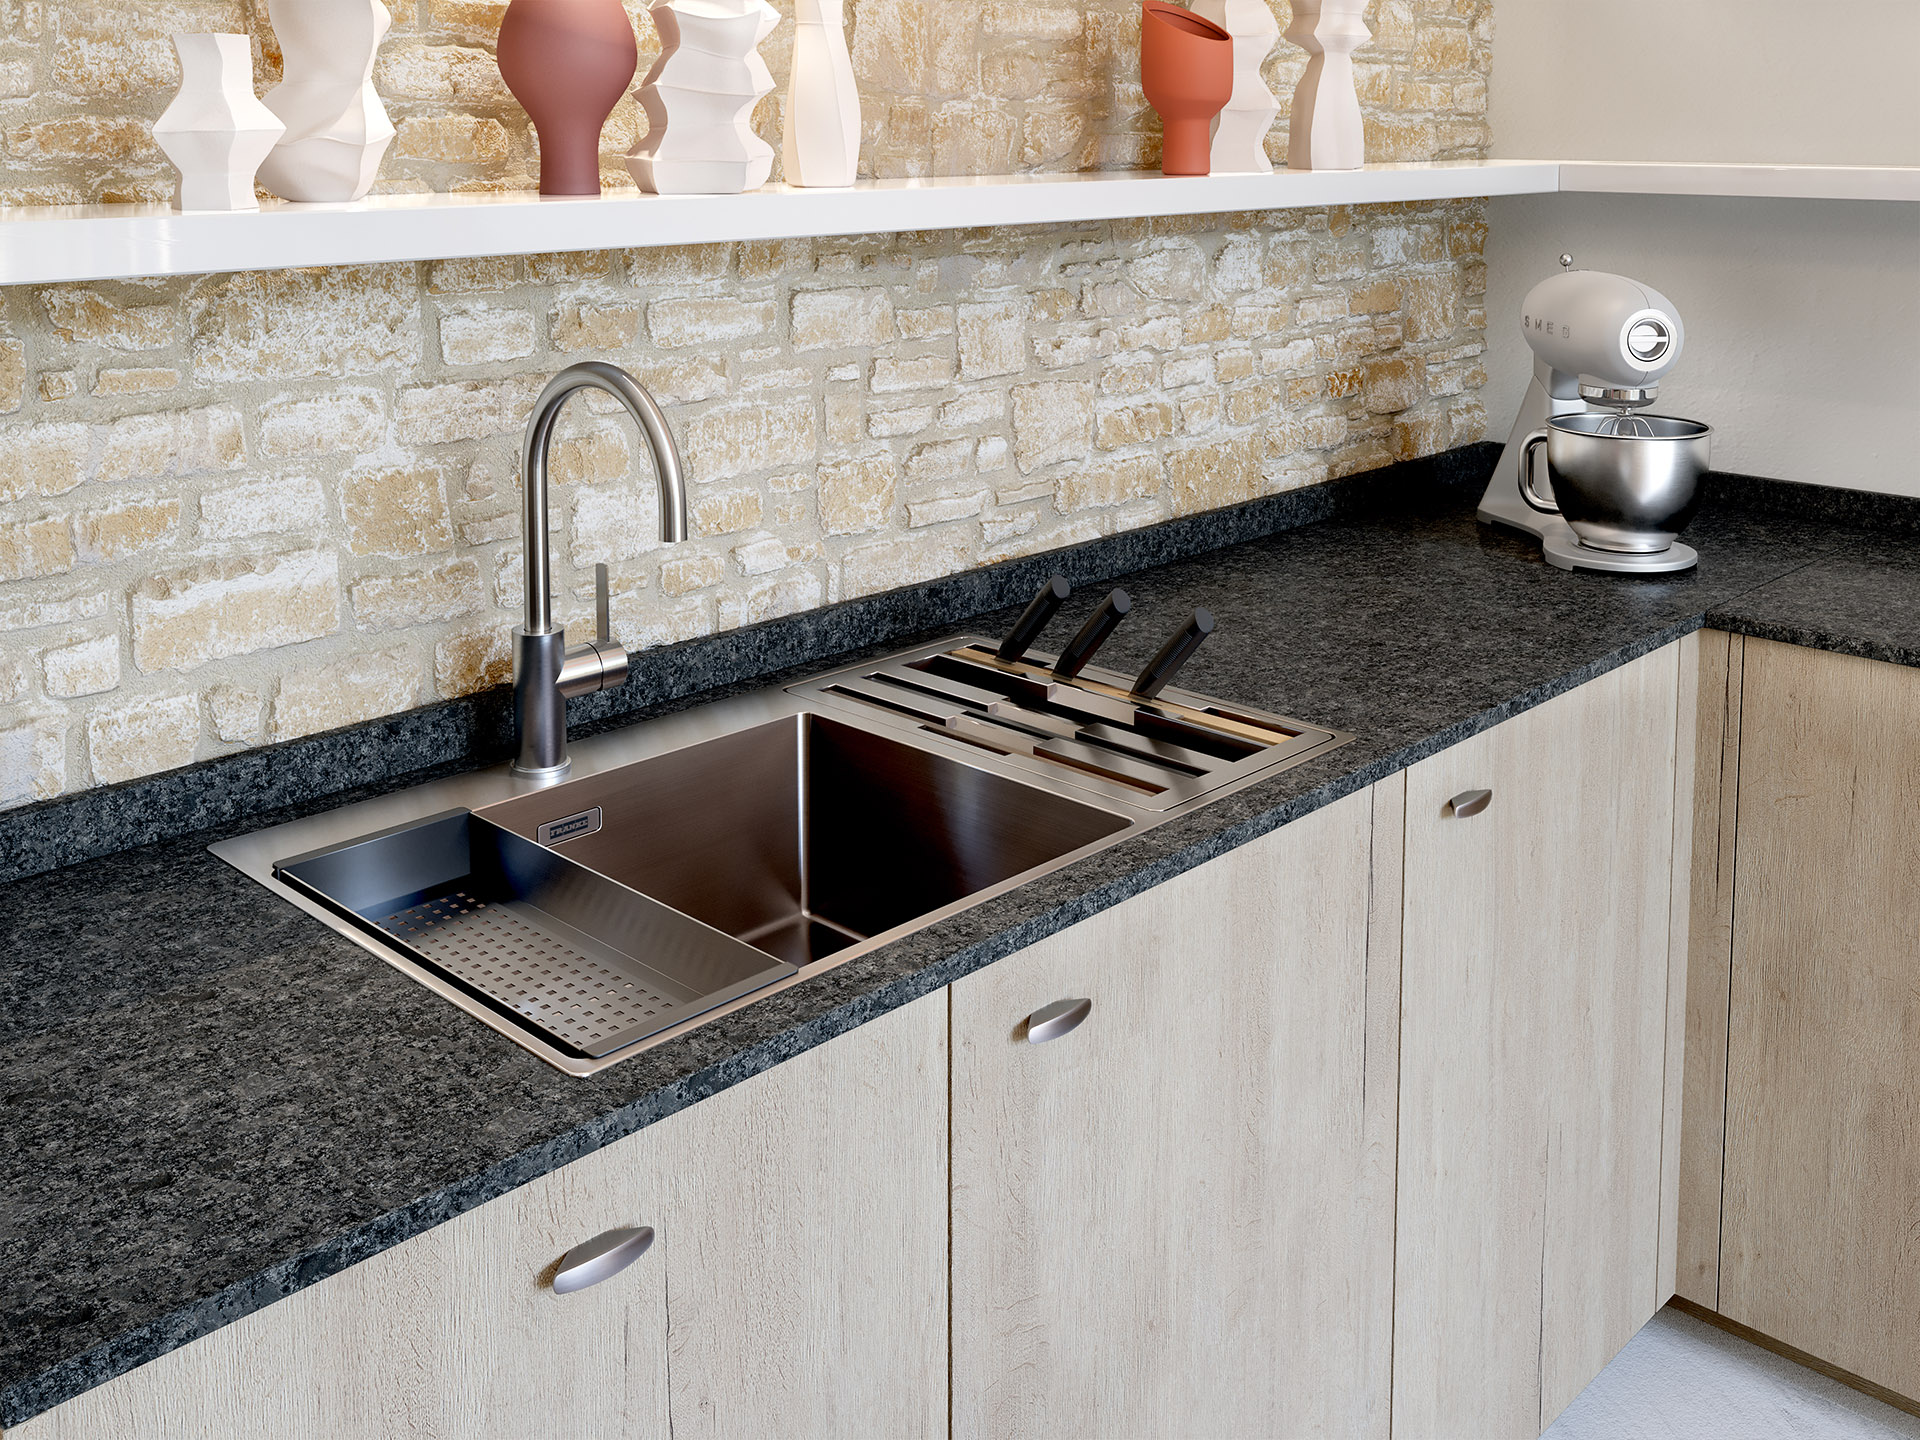 Modern and functional sink in a wooden kitchen made in 3D